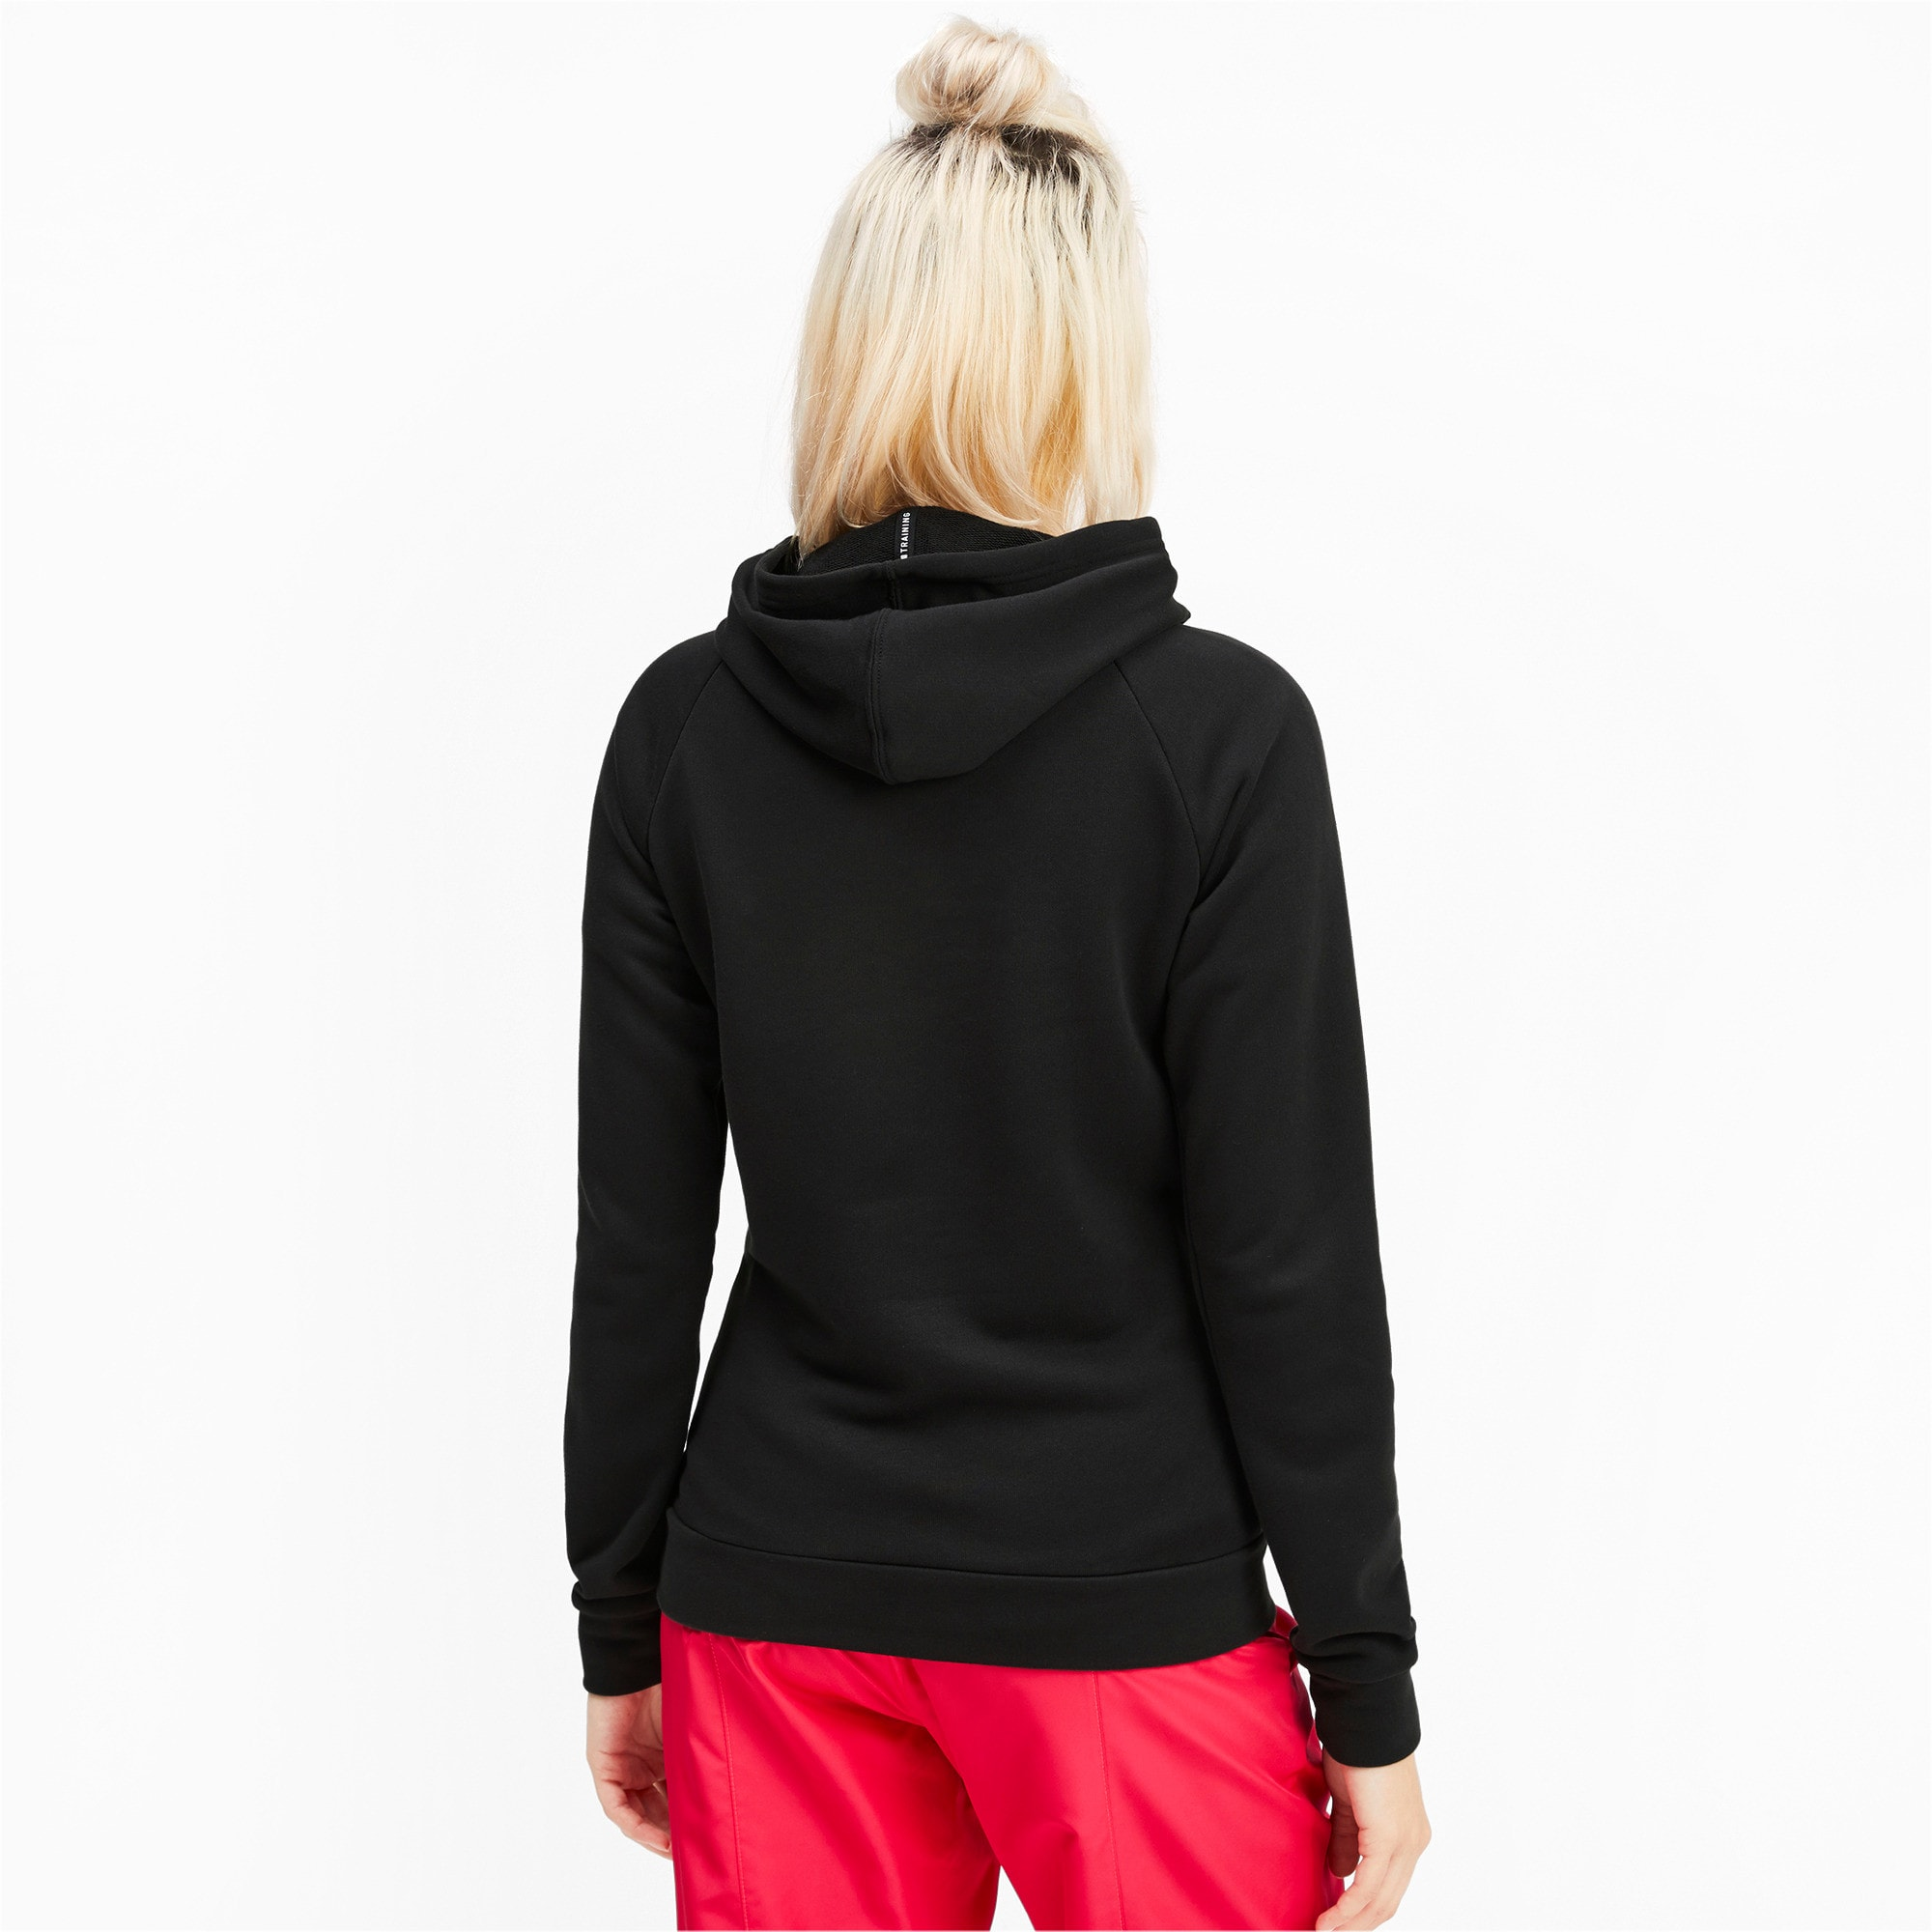 Thumbnail 2 of Fav Women's Training Hoodie, Puma Black, medium-IND